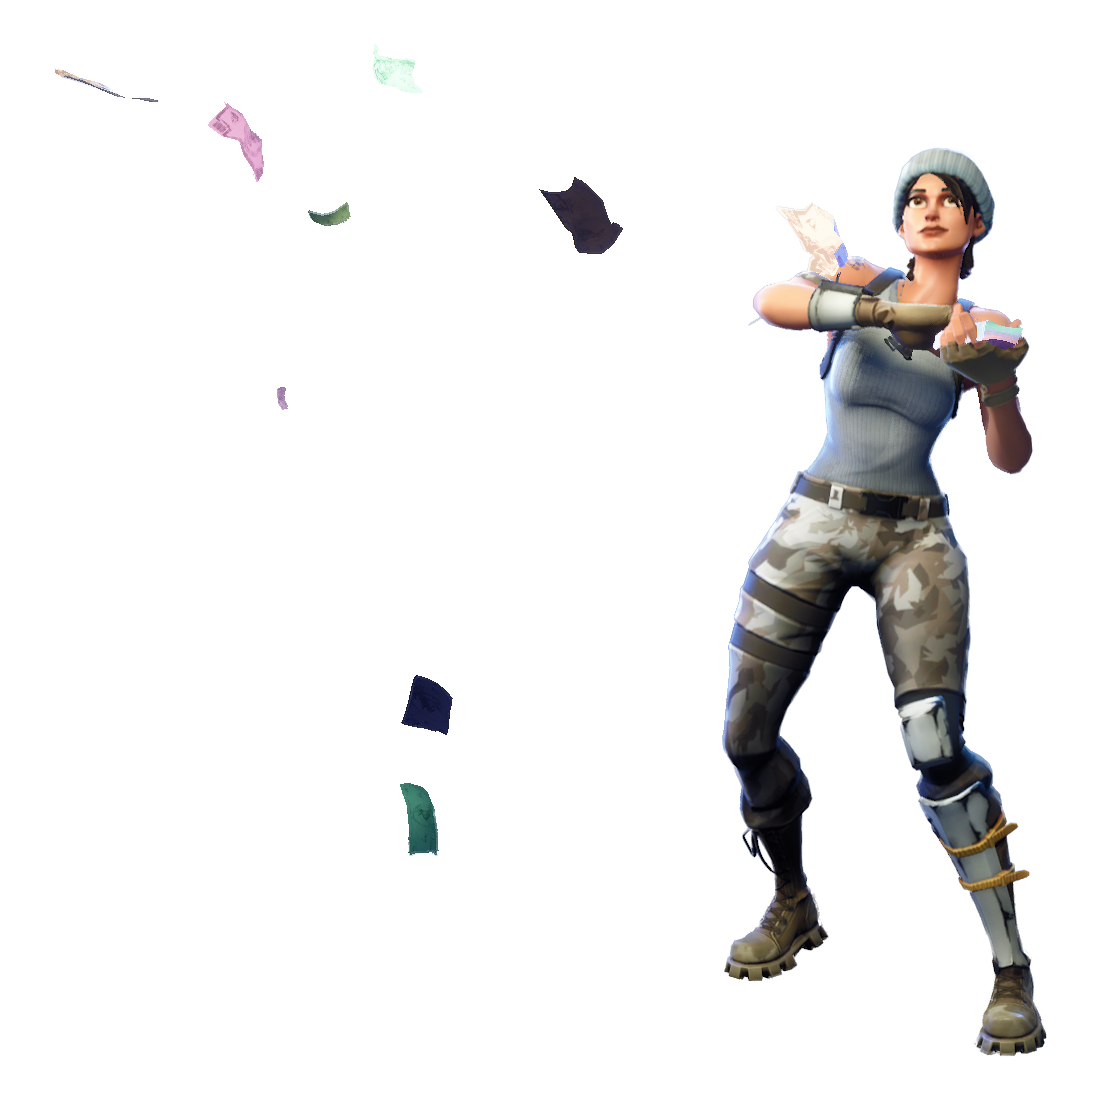 Take the l fortnite png. Make it rain image